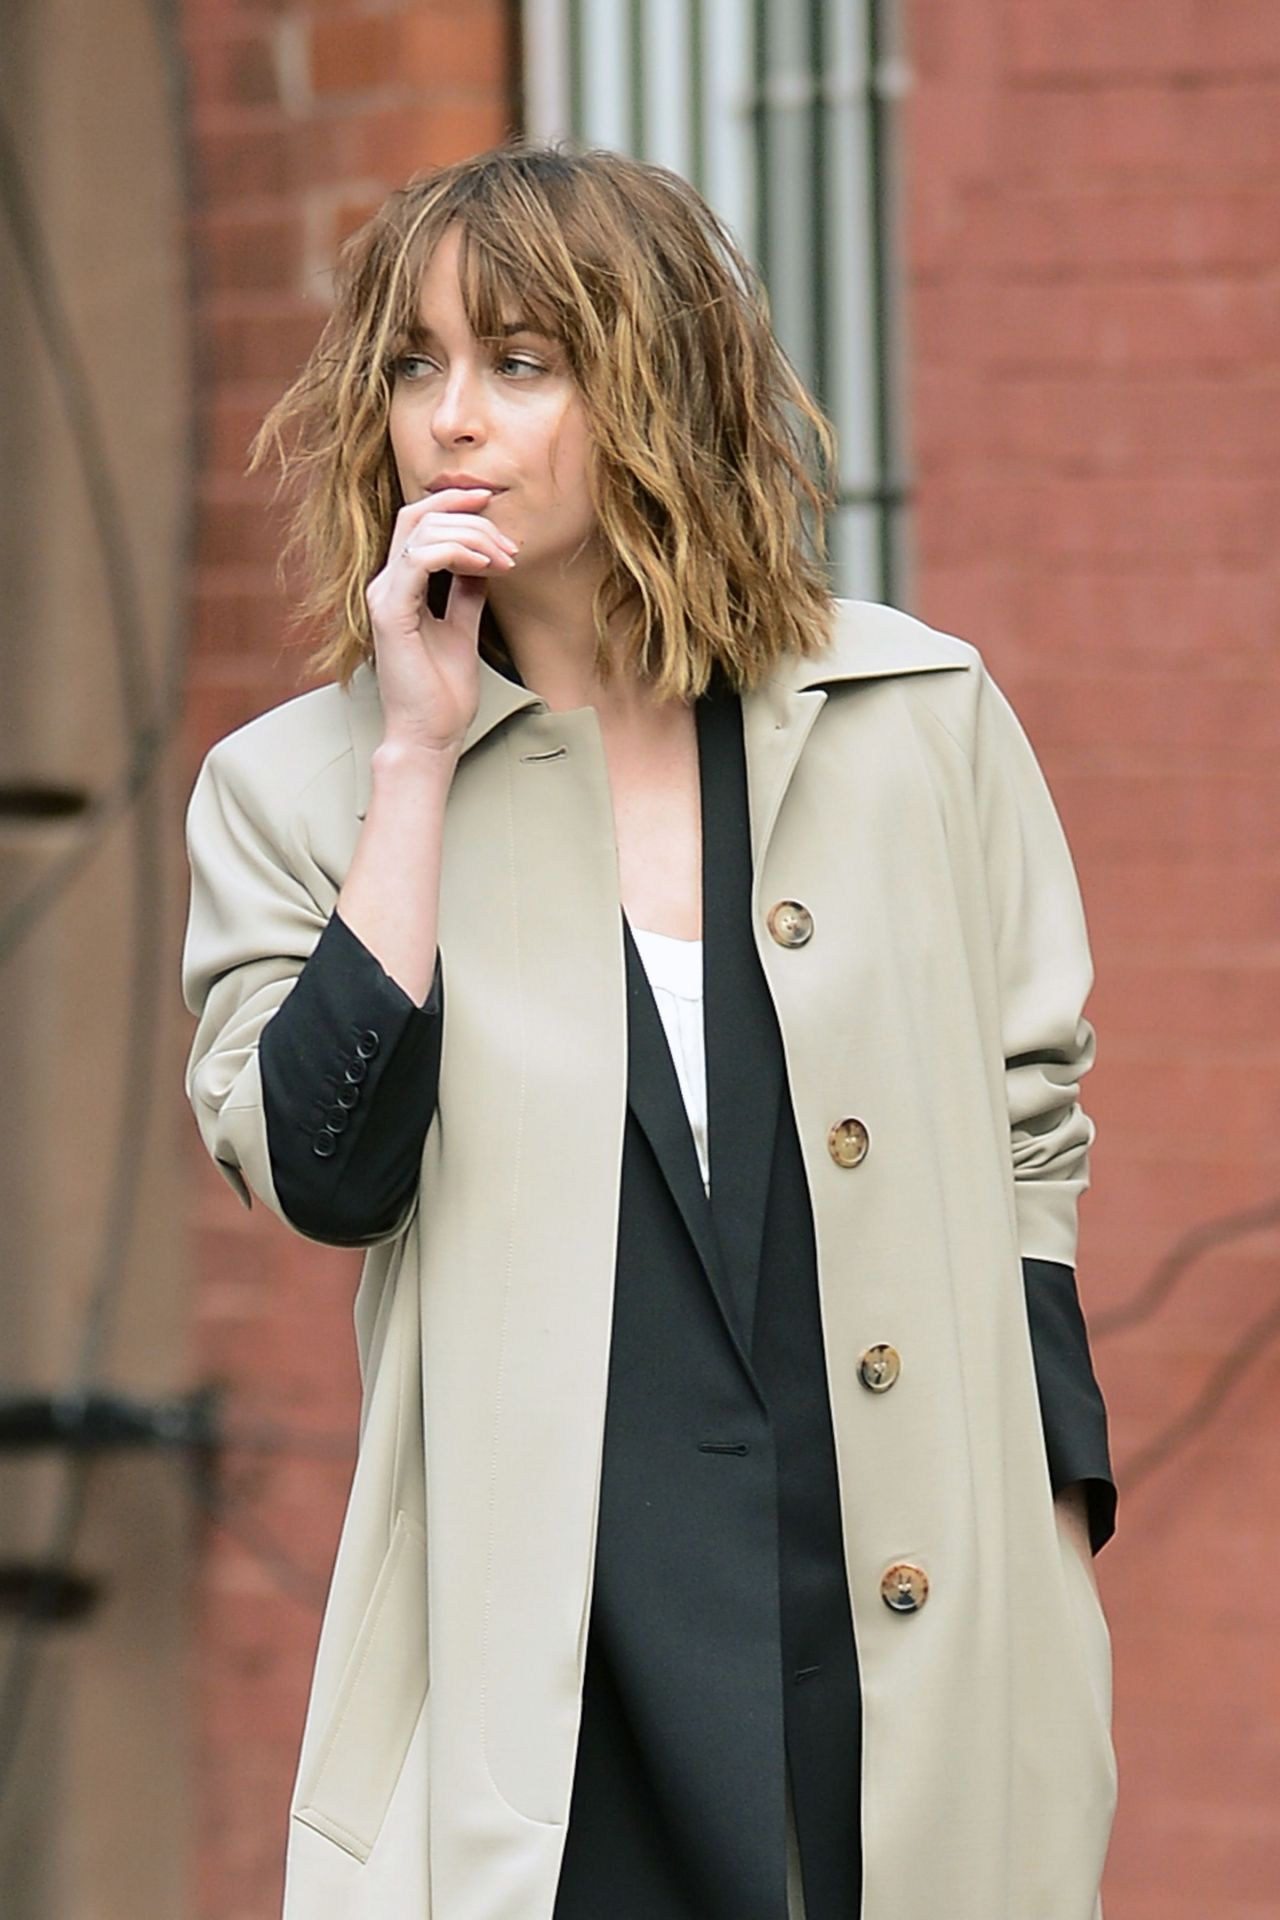 Dakota Johnson Photoshoot In New York City October 2015